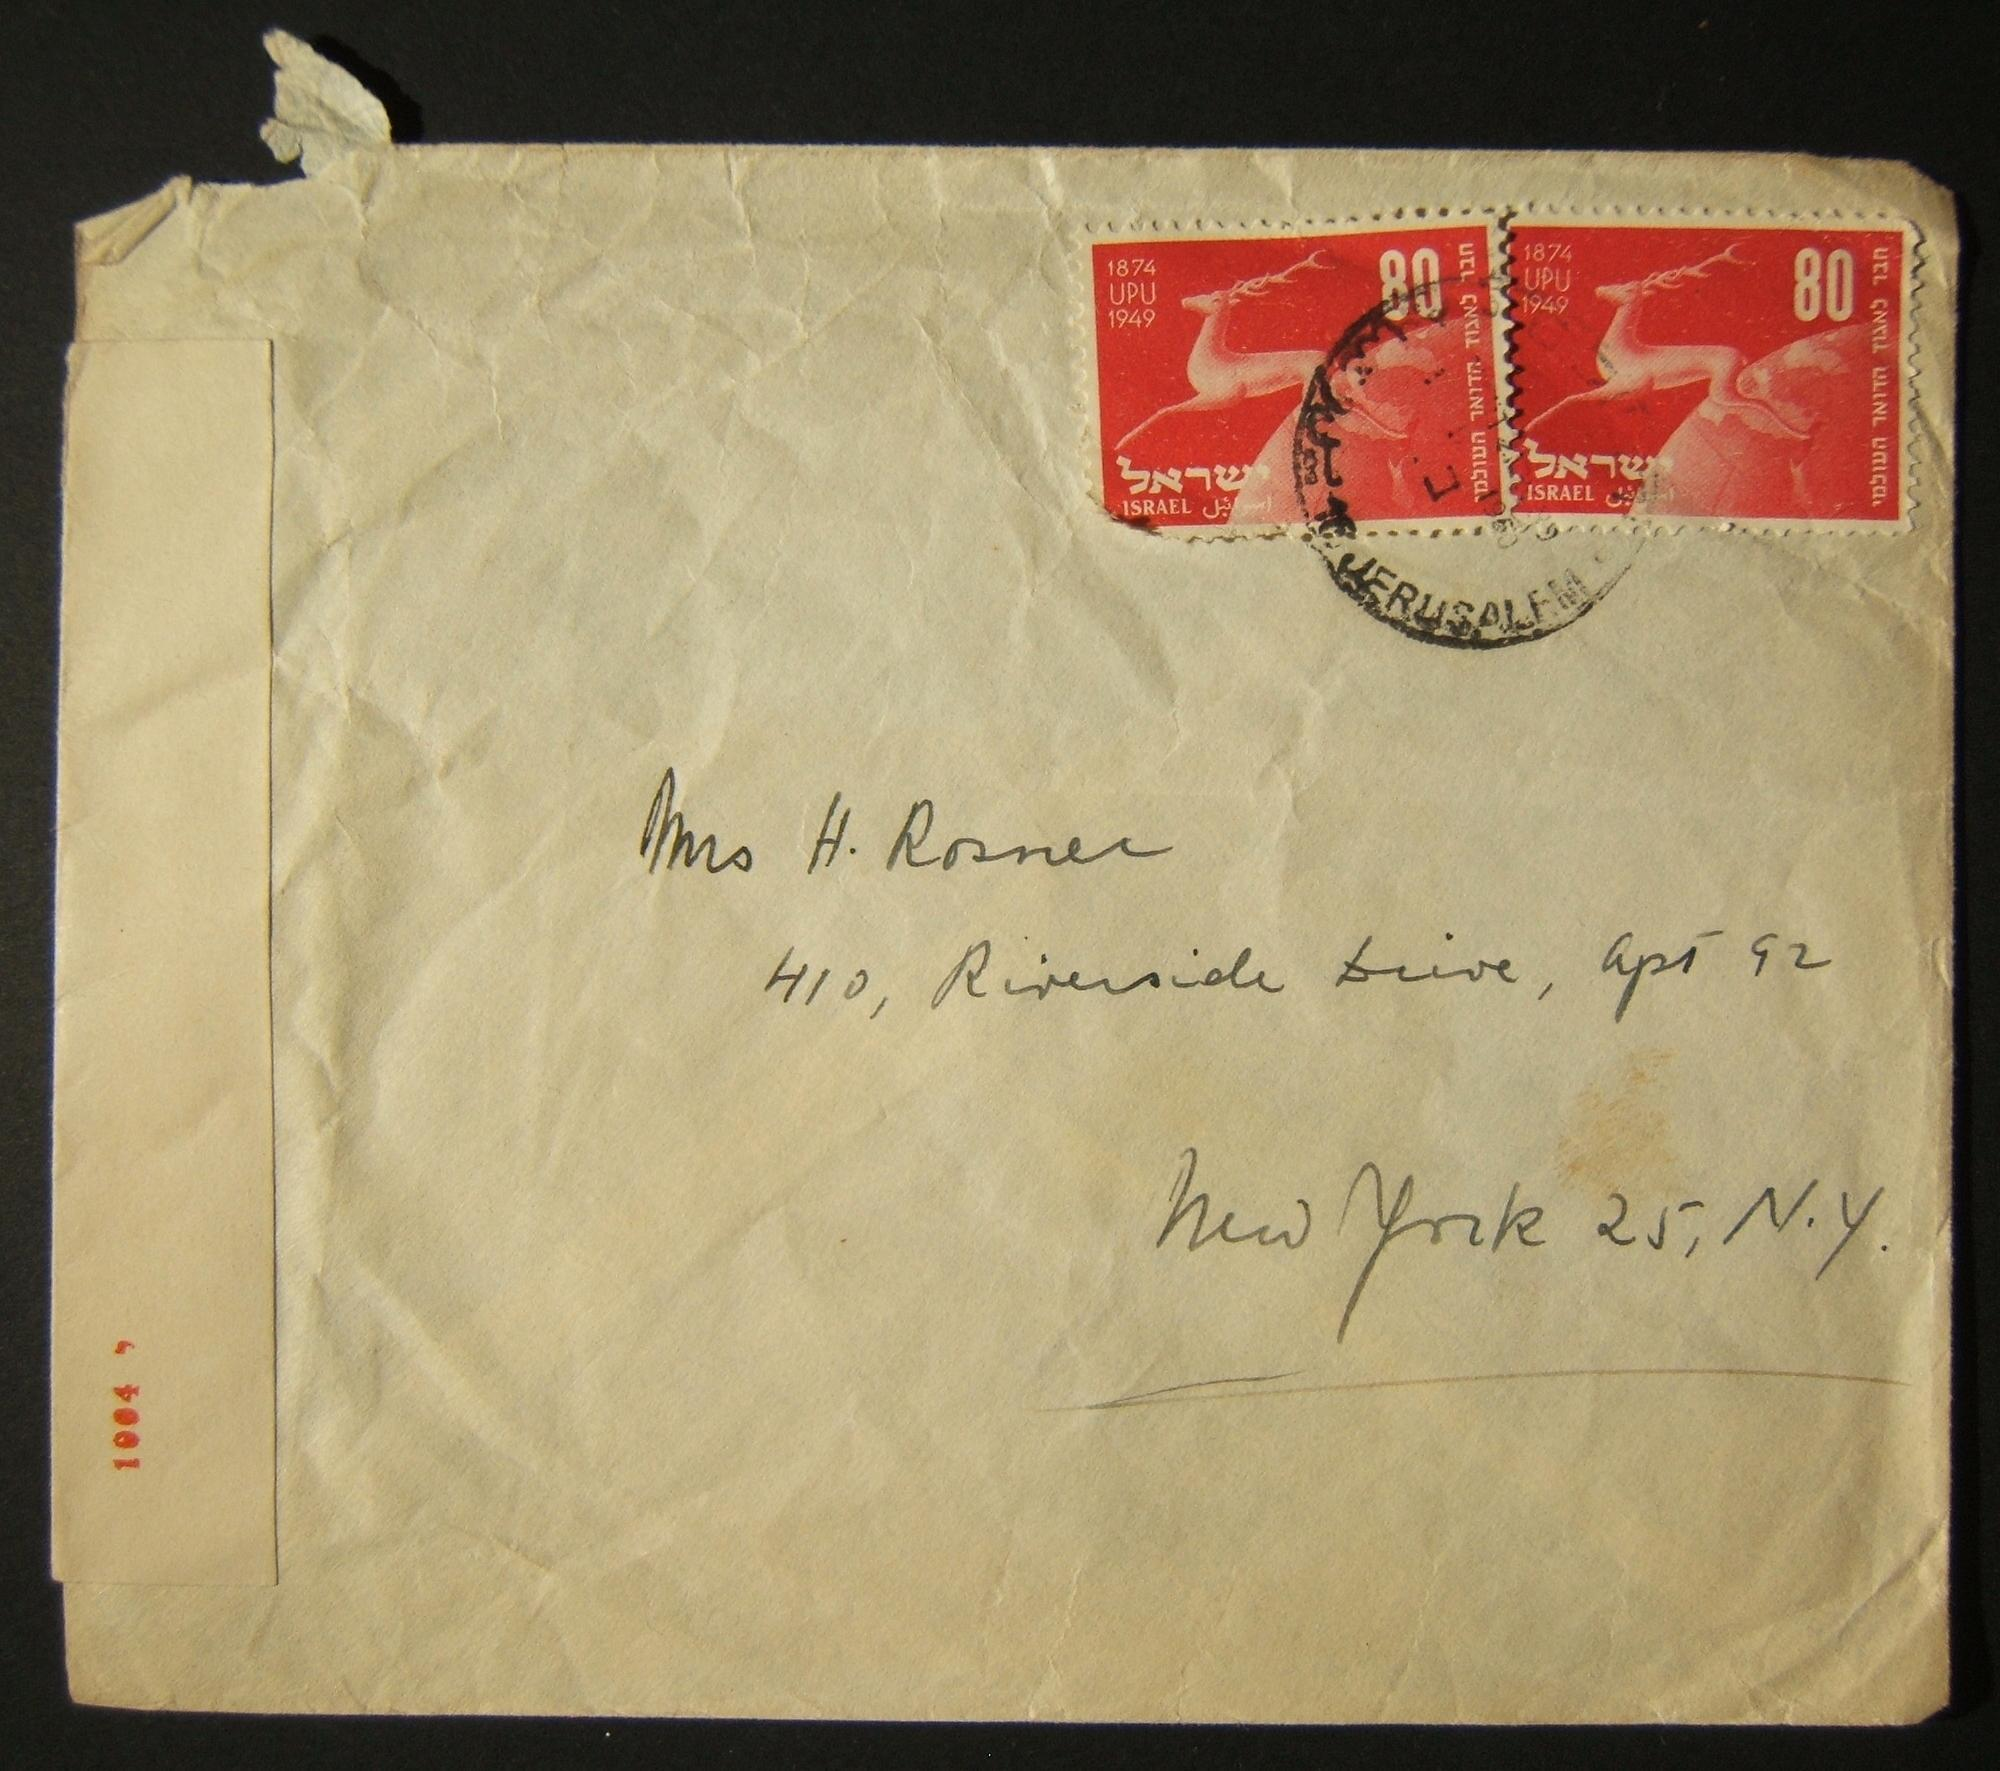 1950 UPU / rates & routes: 3-9-1950 airmail cover ex JERUSALEM to NYC franked 160pr double-rate at the FA-2a rate for additional weight, using 2x 80pr (Ba28) tied by single strike